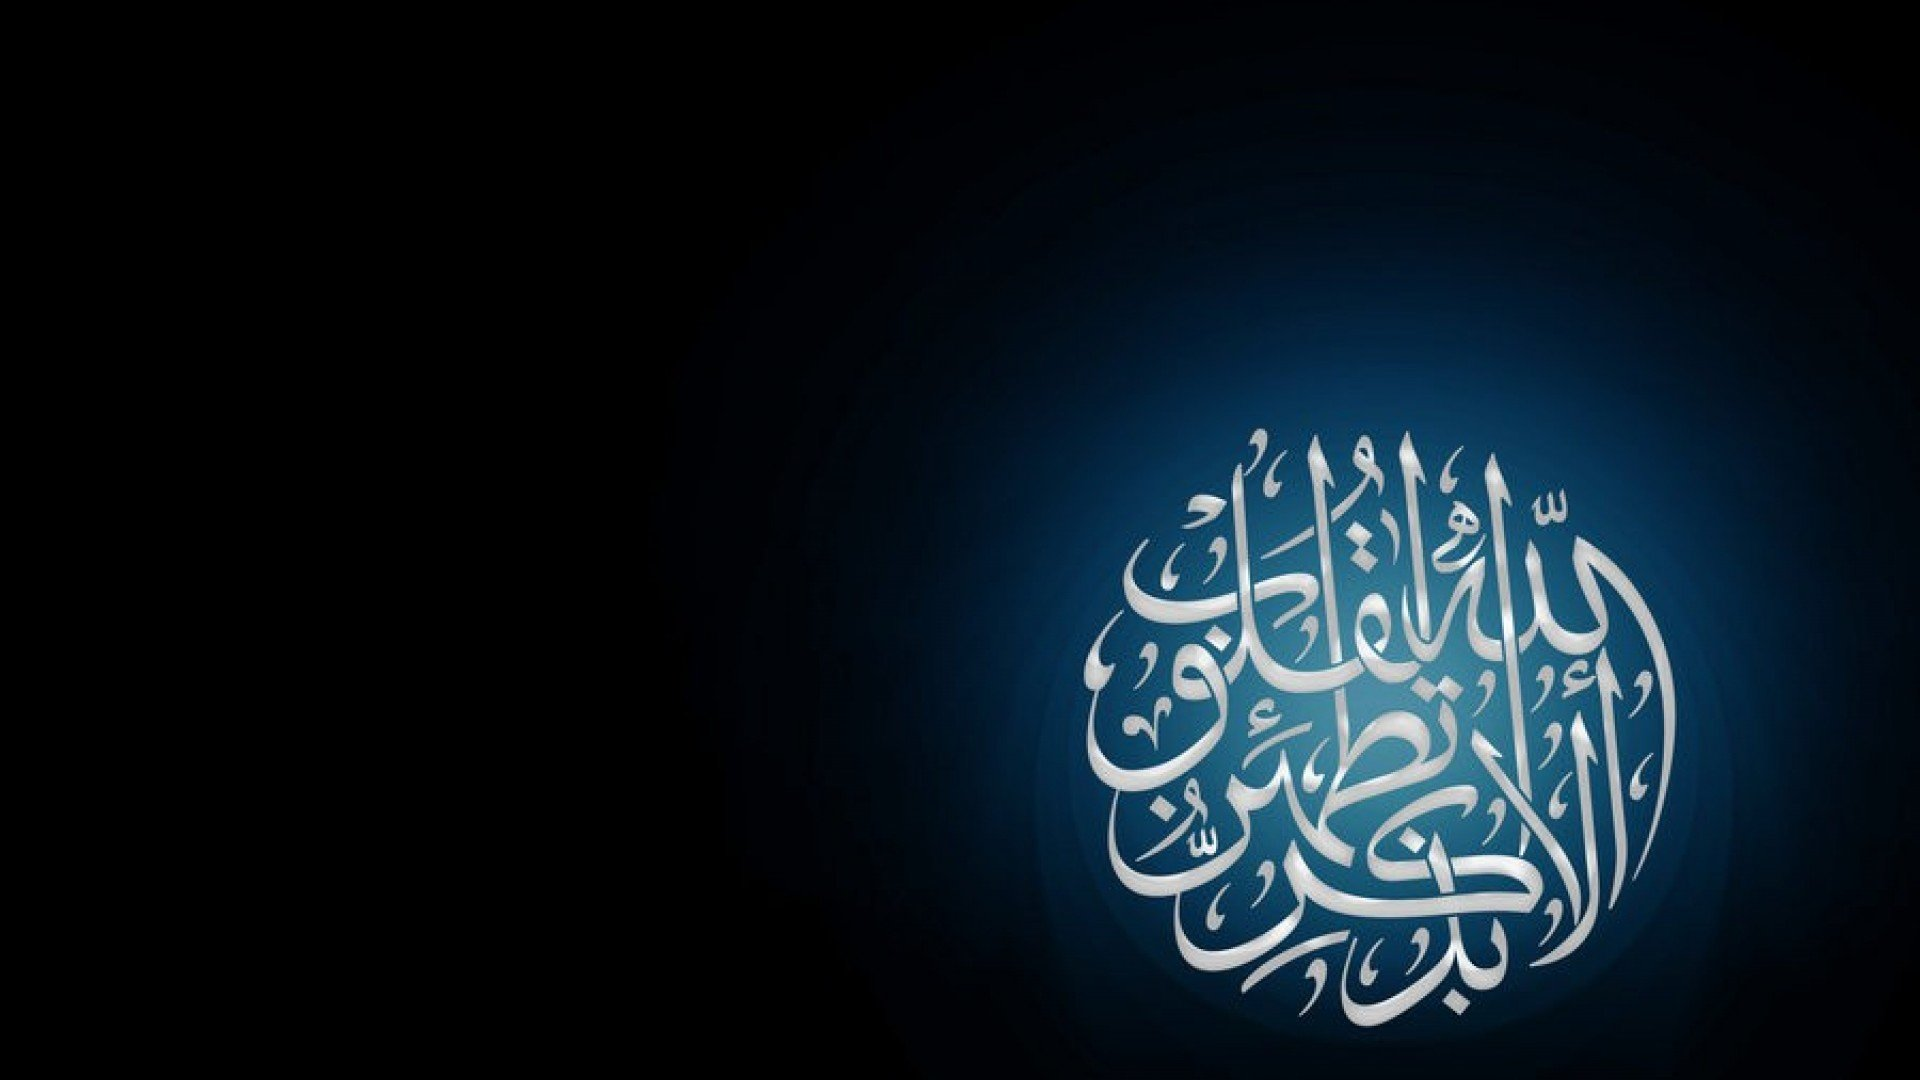 Asus 3d Wallpaper Hd Islam Religion Muslim Wallpaper 1920x1080 409577